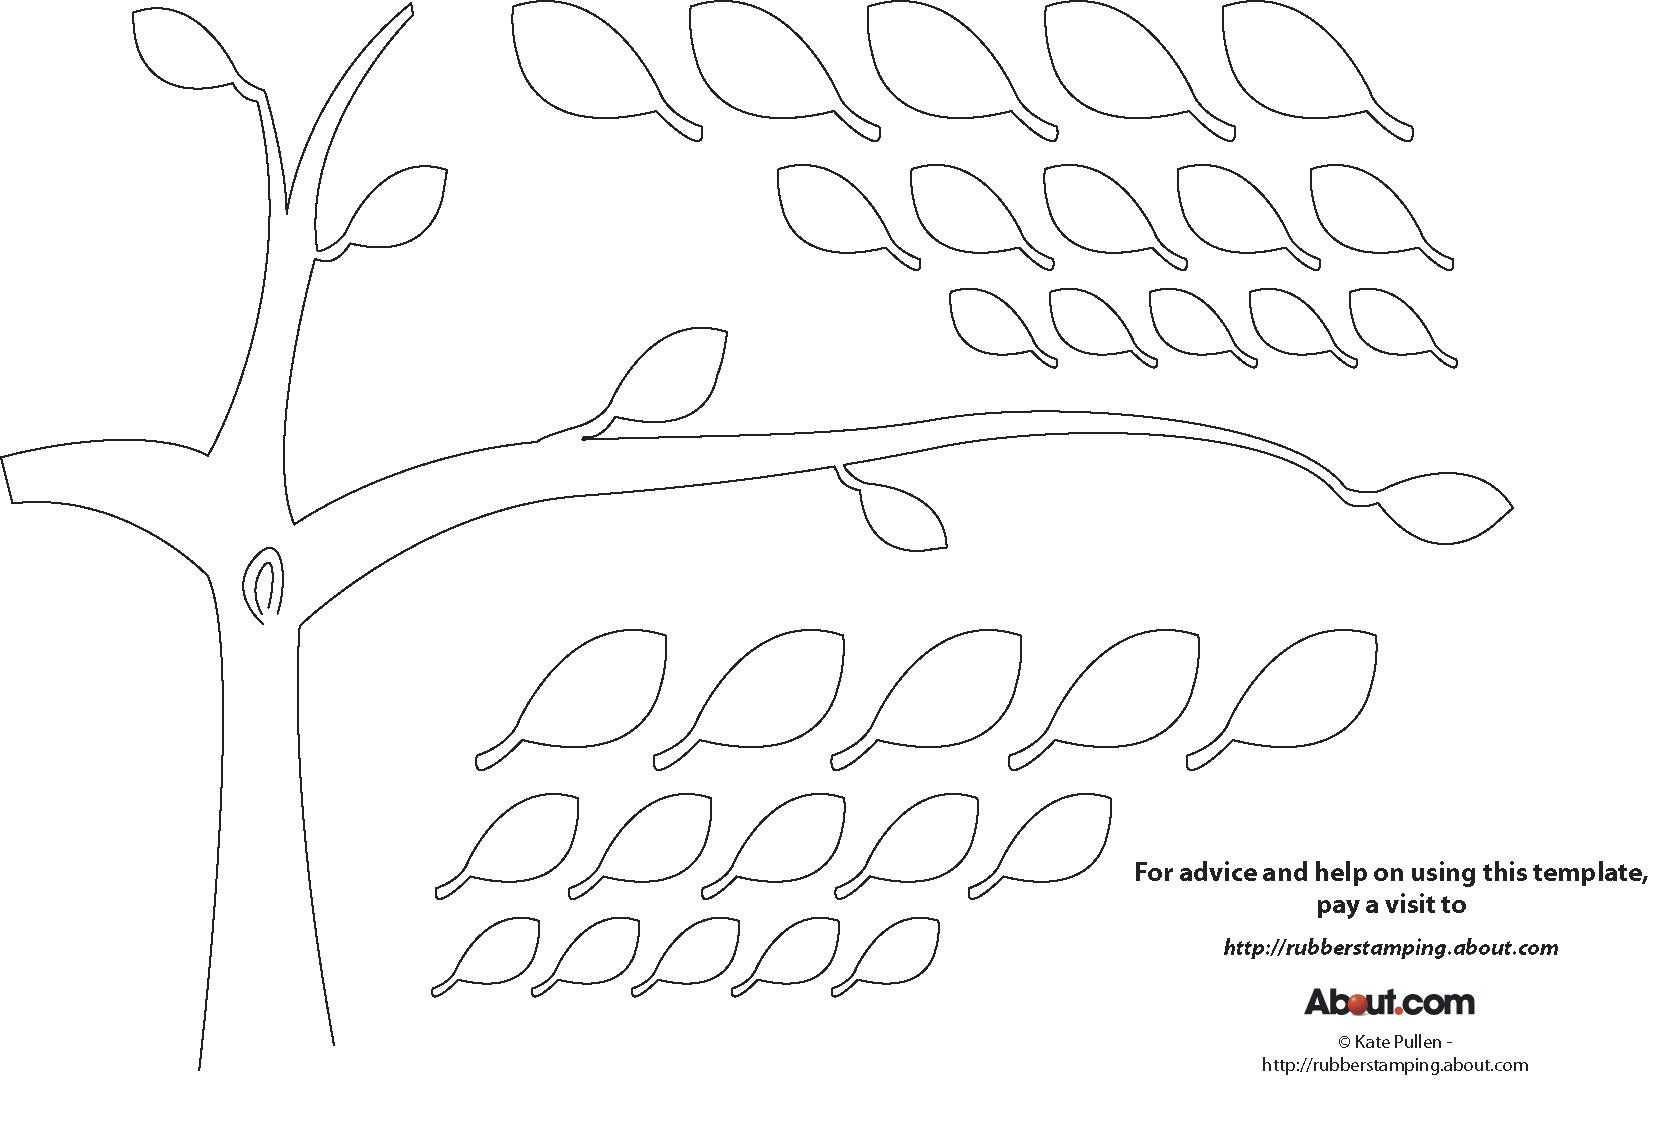 adfcaff3c34afbc549ecc616783c4e65 Printable Large Dog House Plans on printable furniture templates, blue bird house plans, savannah style home plans, coffin building plans, large house plans, kennel building plans, printable friskies coupons purina, printable manufacturers grocery coupons, paper house plans, goose house plans, printable mad libs for adults, lowe's house plans, downloadable house plans, metal shop house plans, 20 x 36 house plans, old coffin plans, easy bird house plans, open shotgun style house plans, farrowing house plans, dog cart plans,